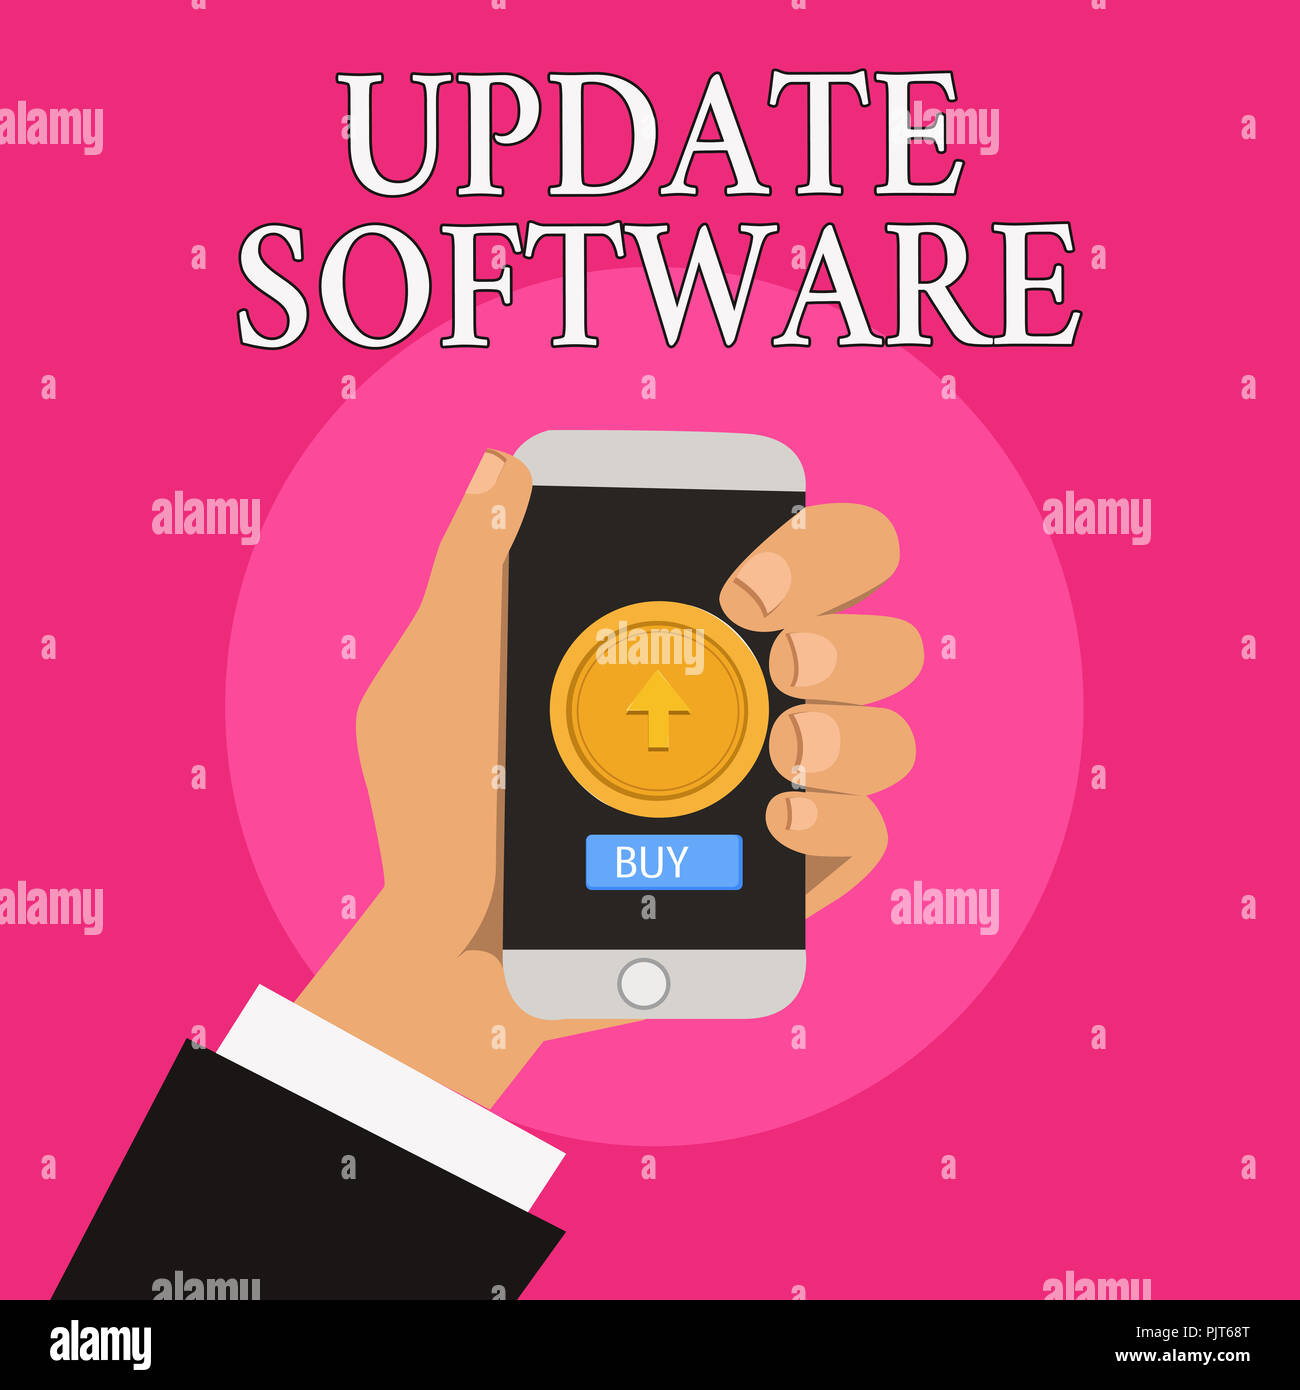 what is the meaning of application software